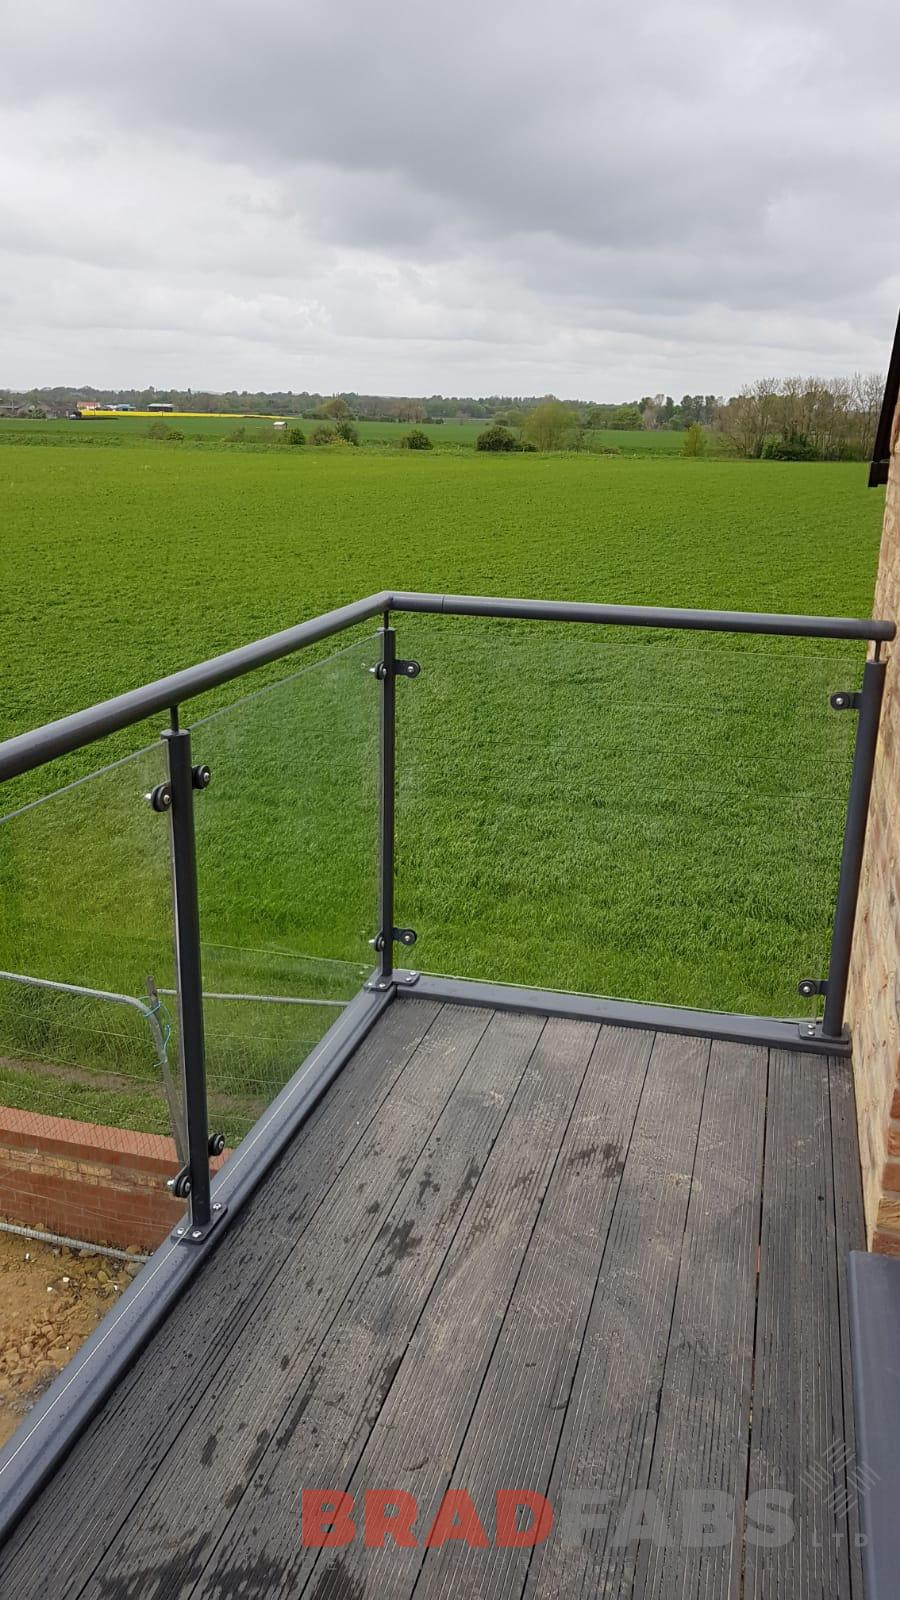 A view of our customers excellent finish of composite decked flooring and 10mm toughened safety glass, with mild steel galvanised and powder coated frame by Bradfabs